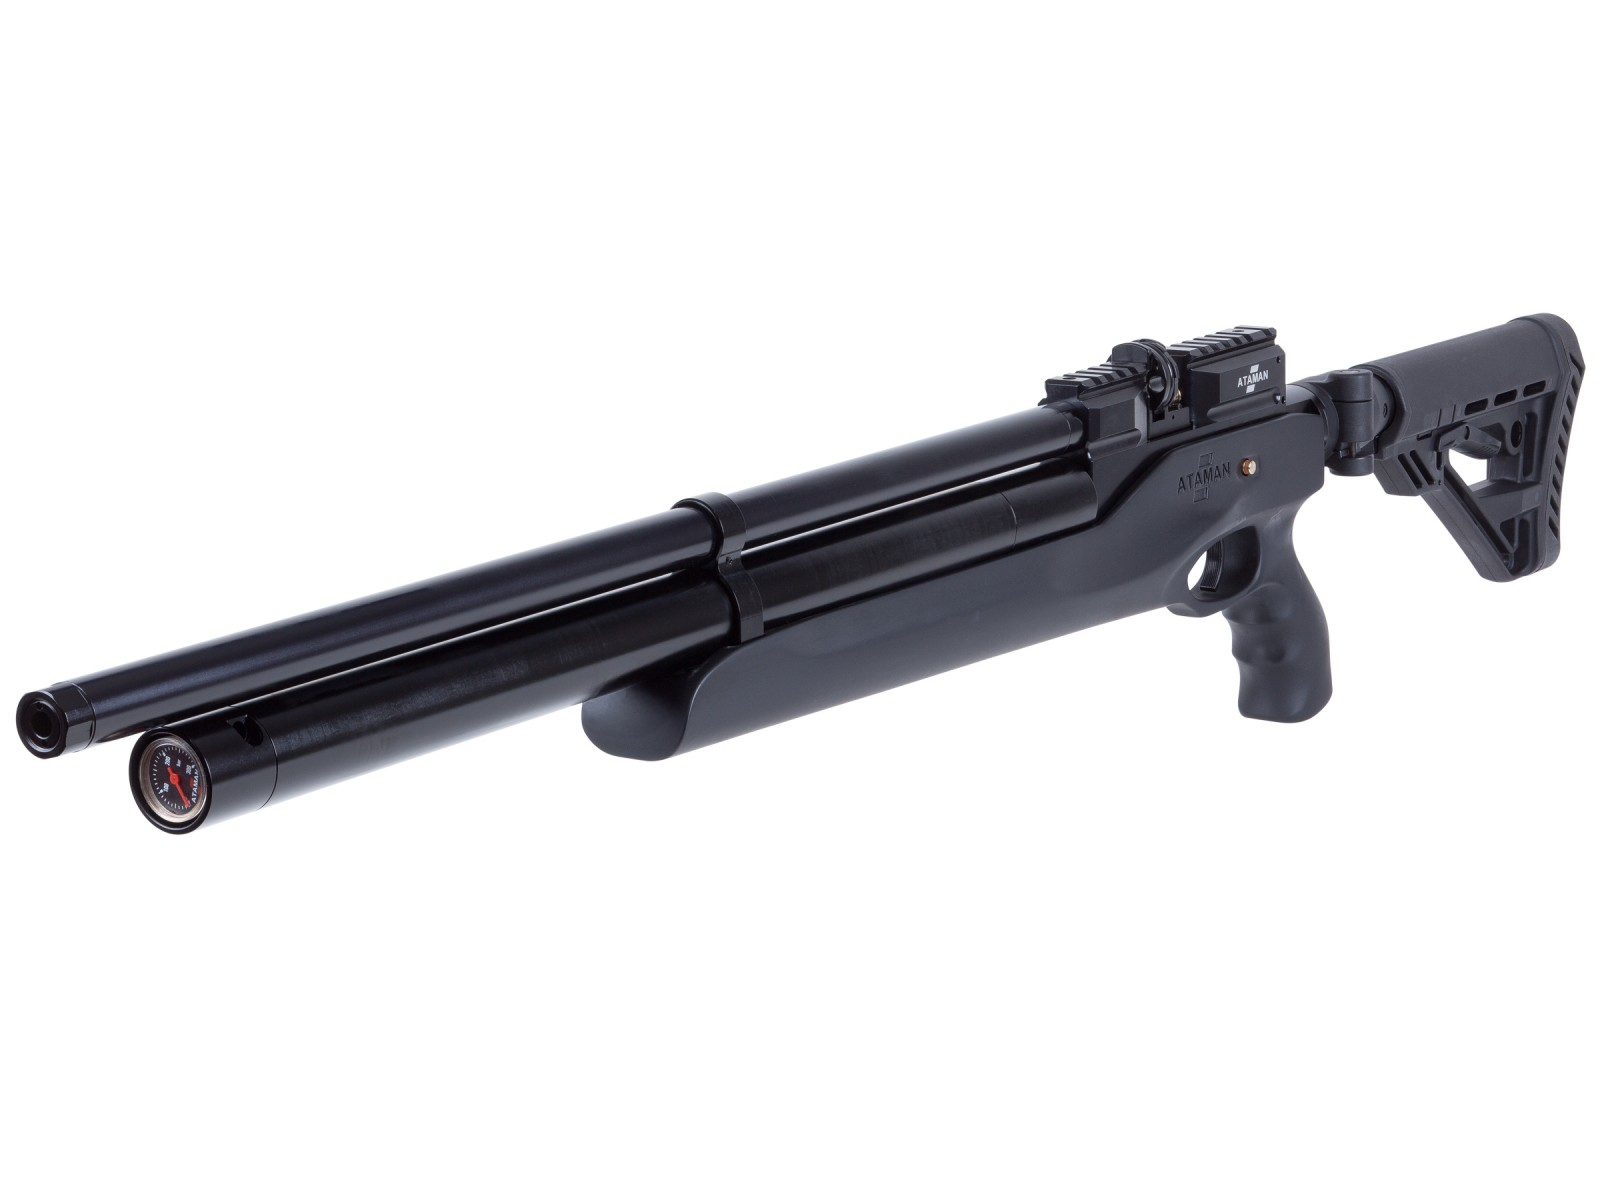 Ataman M2R Tact Carbine Type 4 Compact Air Rifle, Black